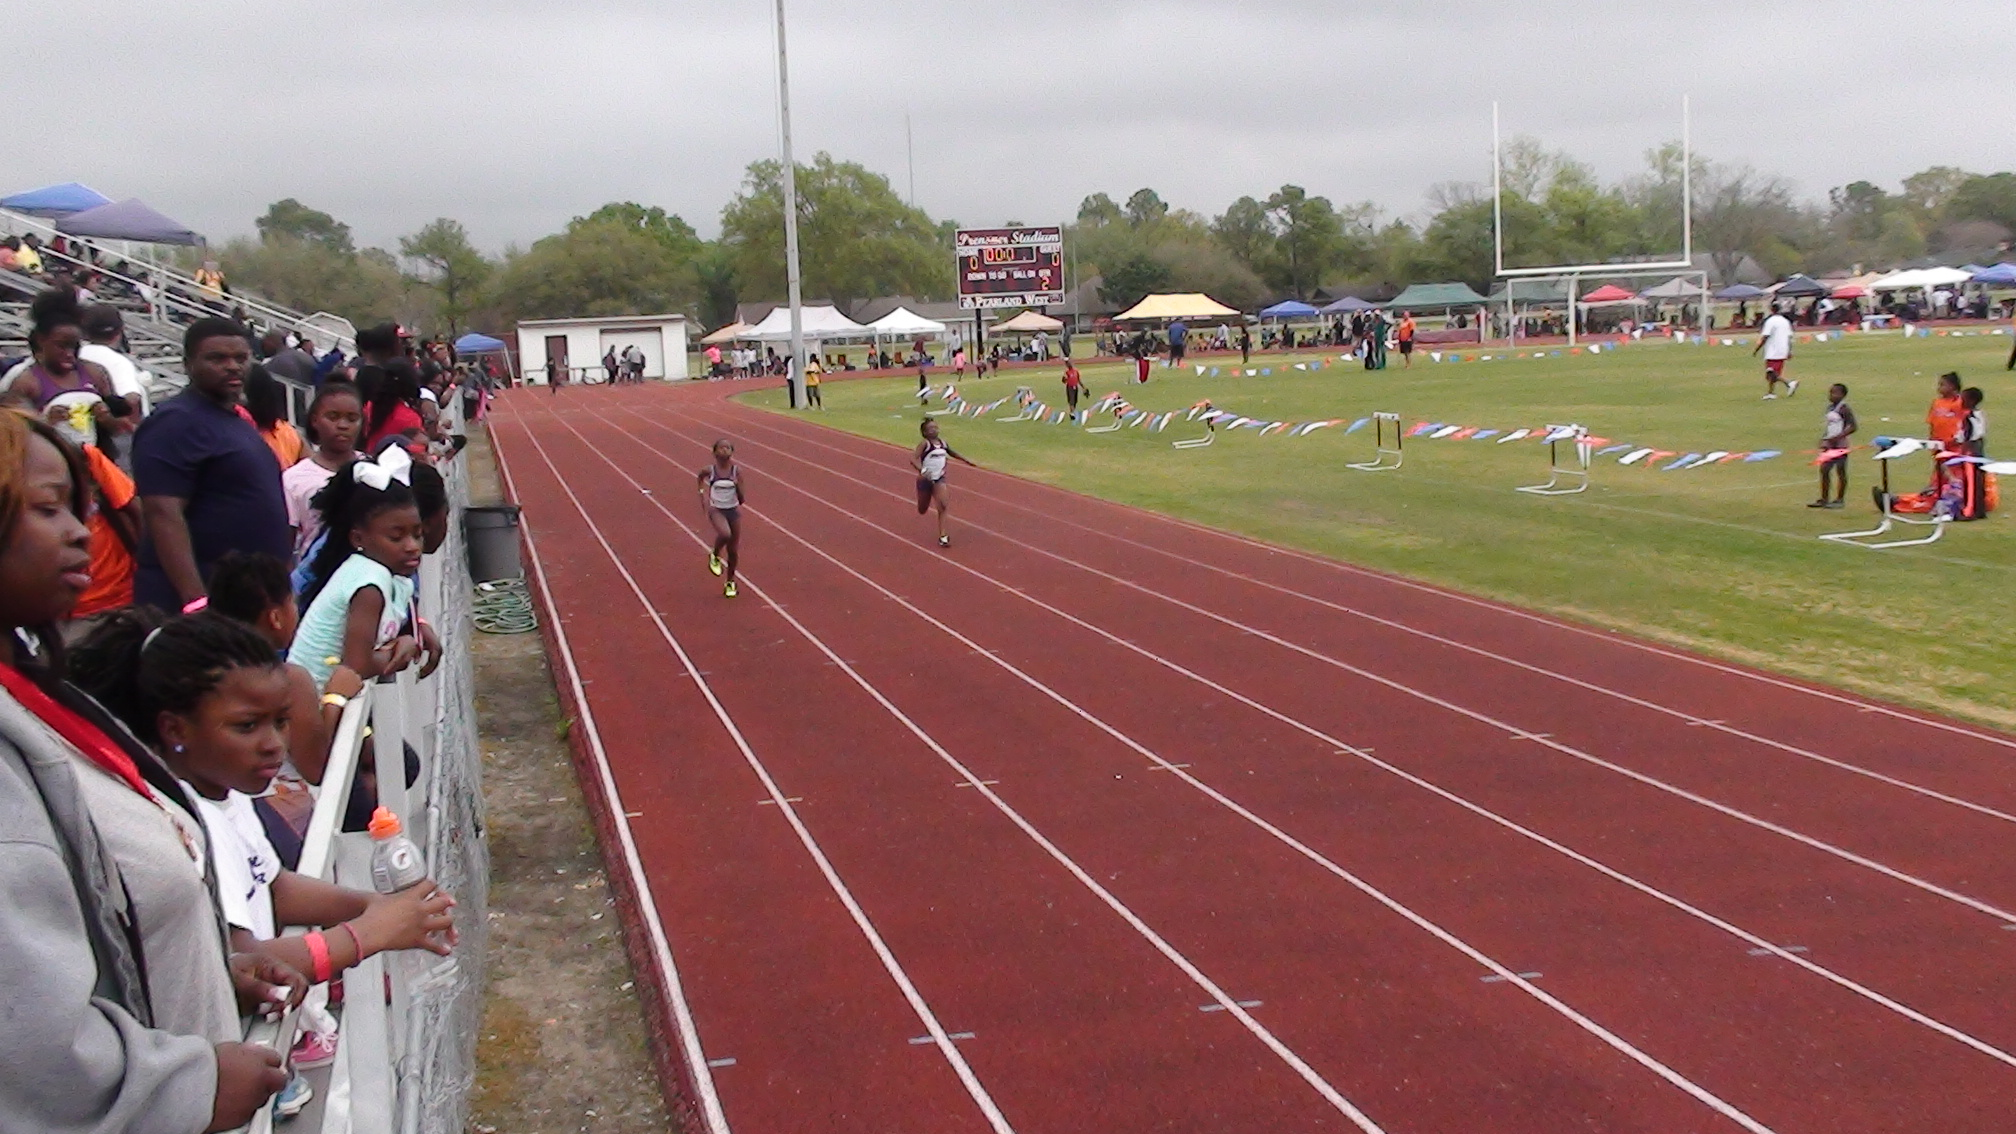 Ladecia and Sydney running in the 200m